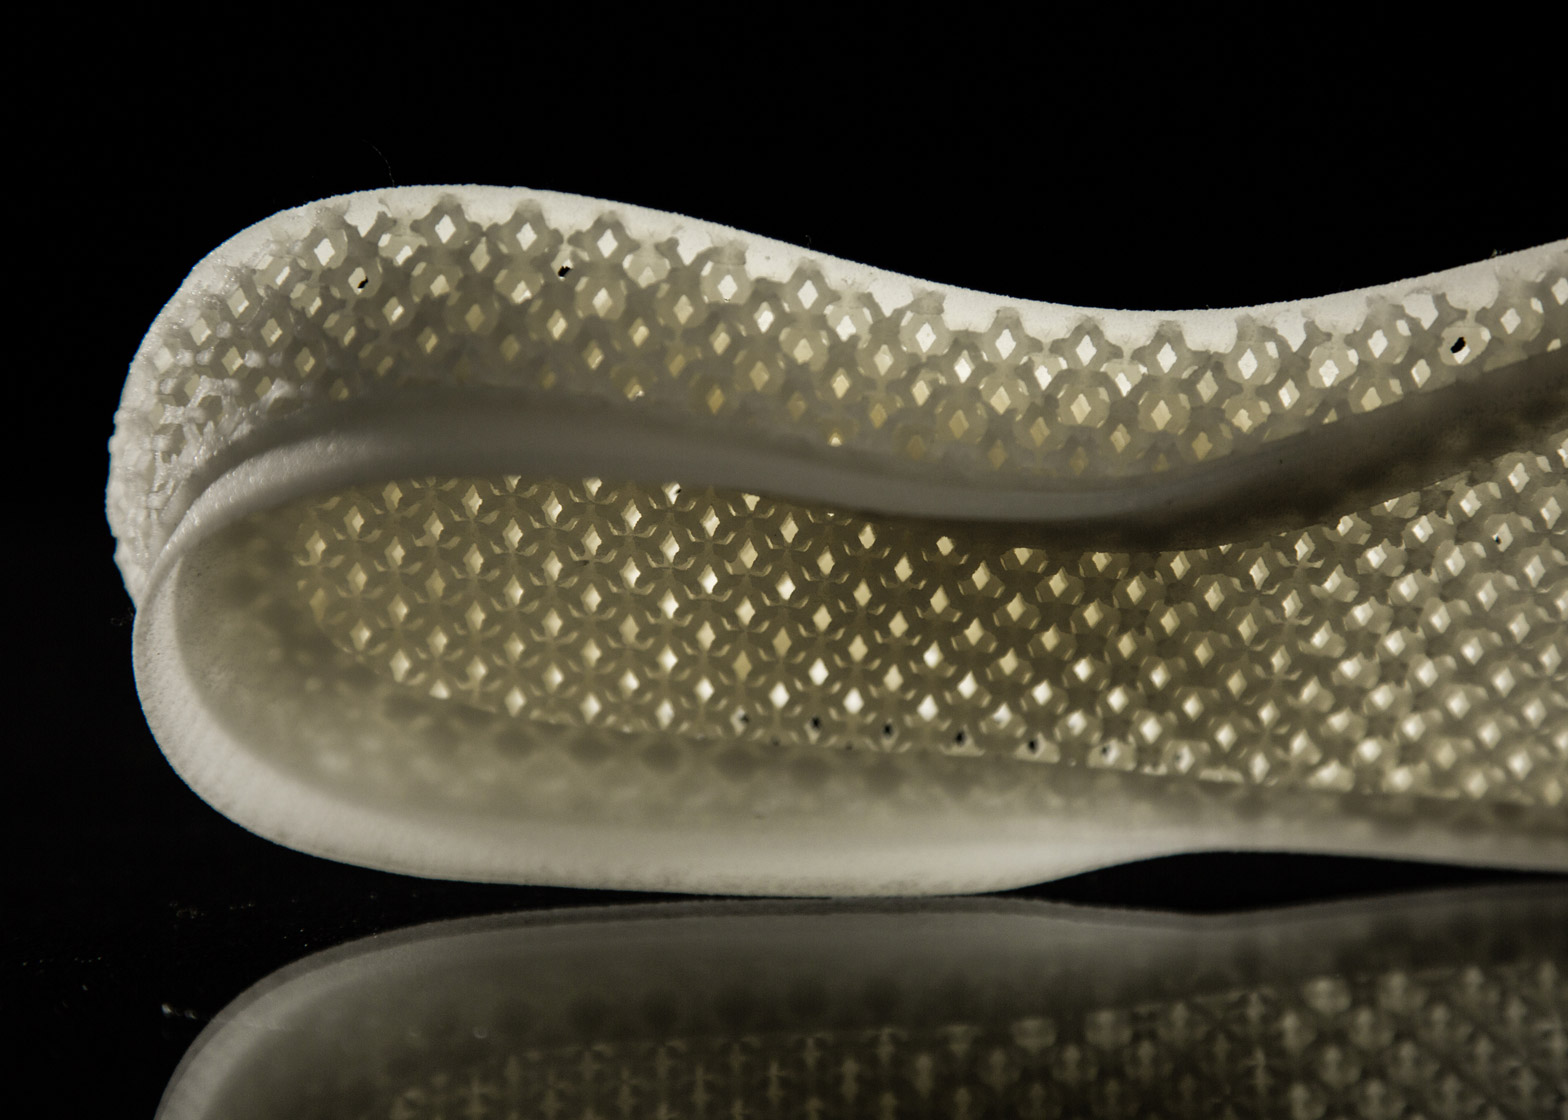 Adidas Futurecraft sole is 3D-printed copy of athletes